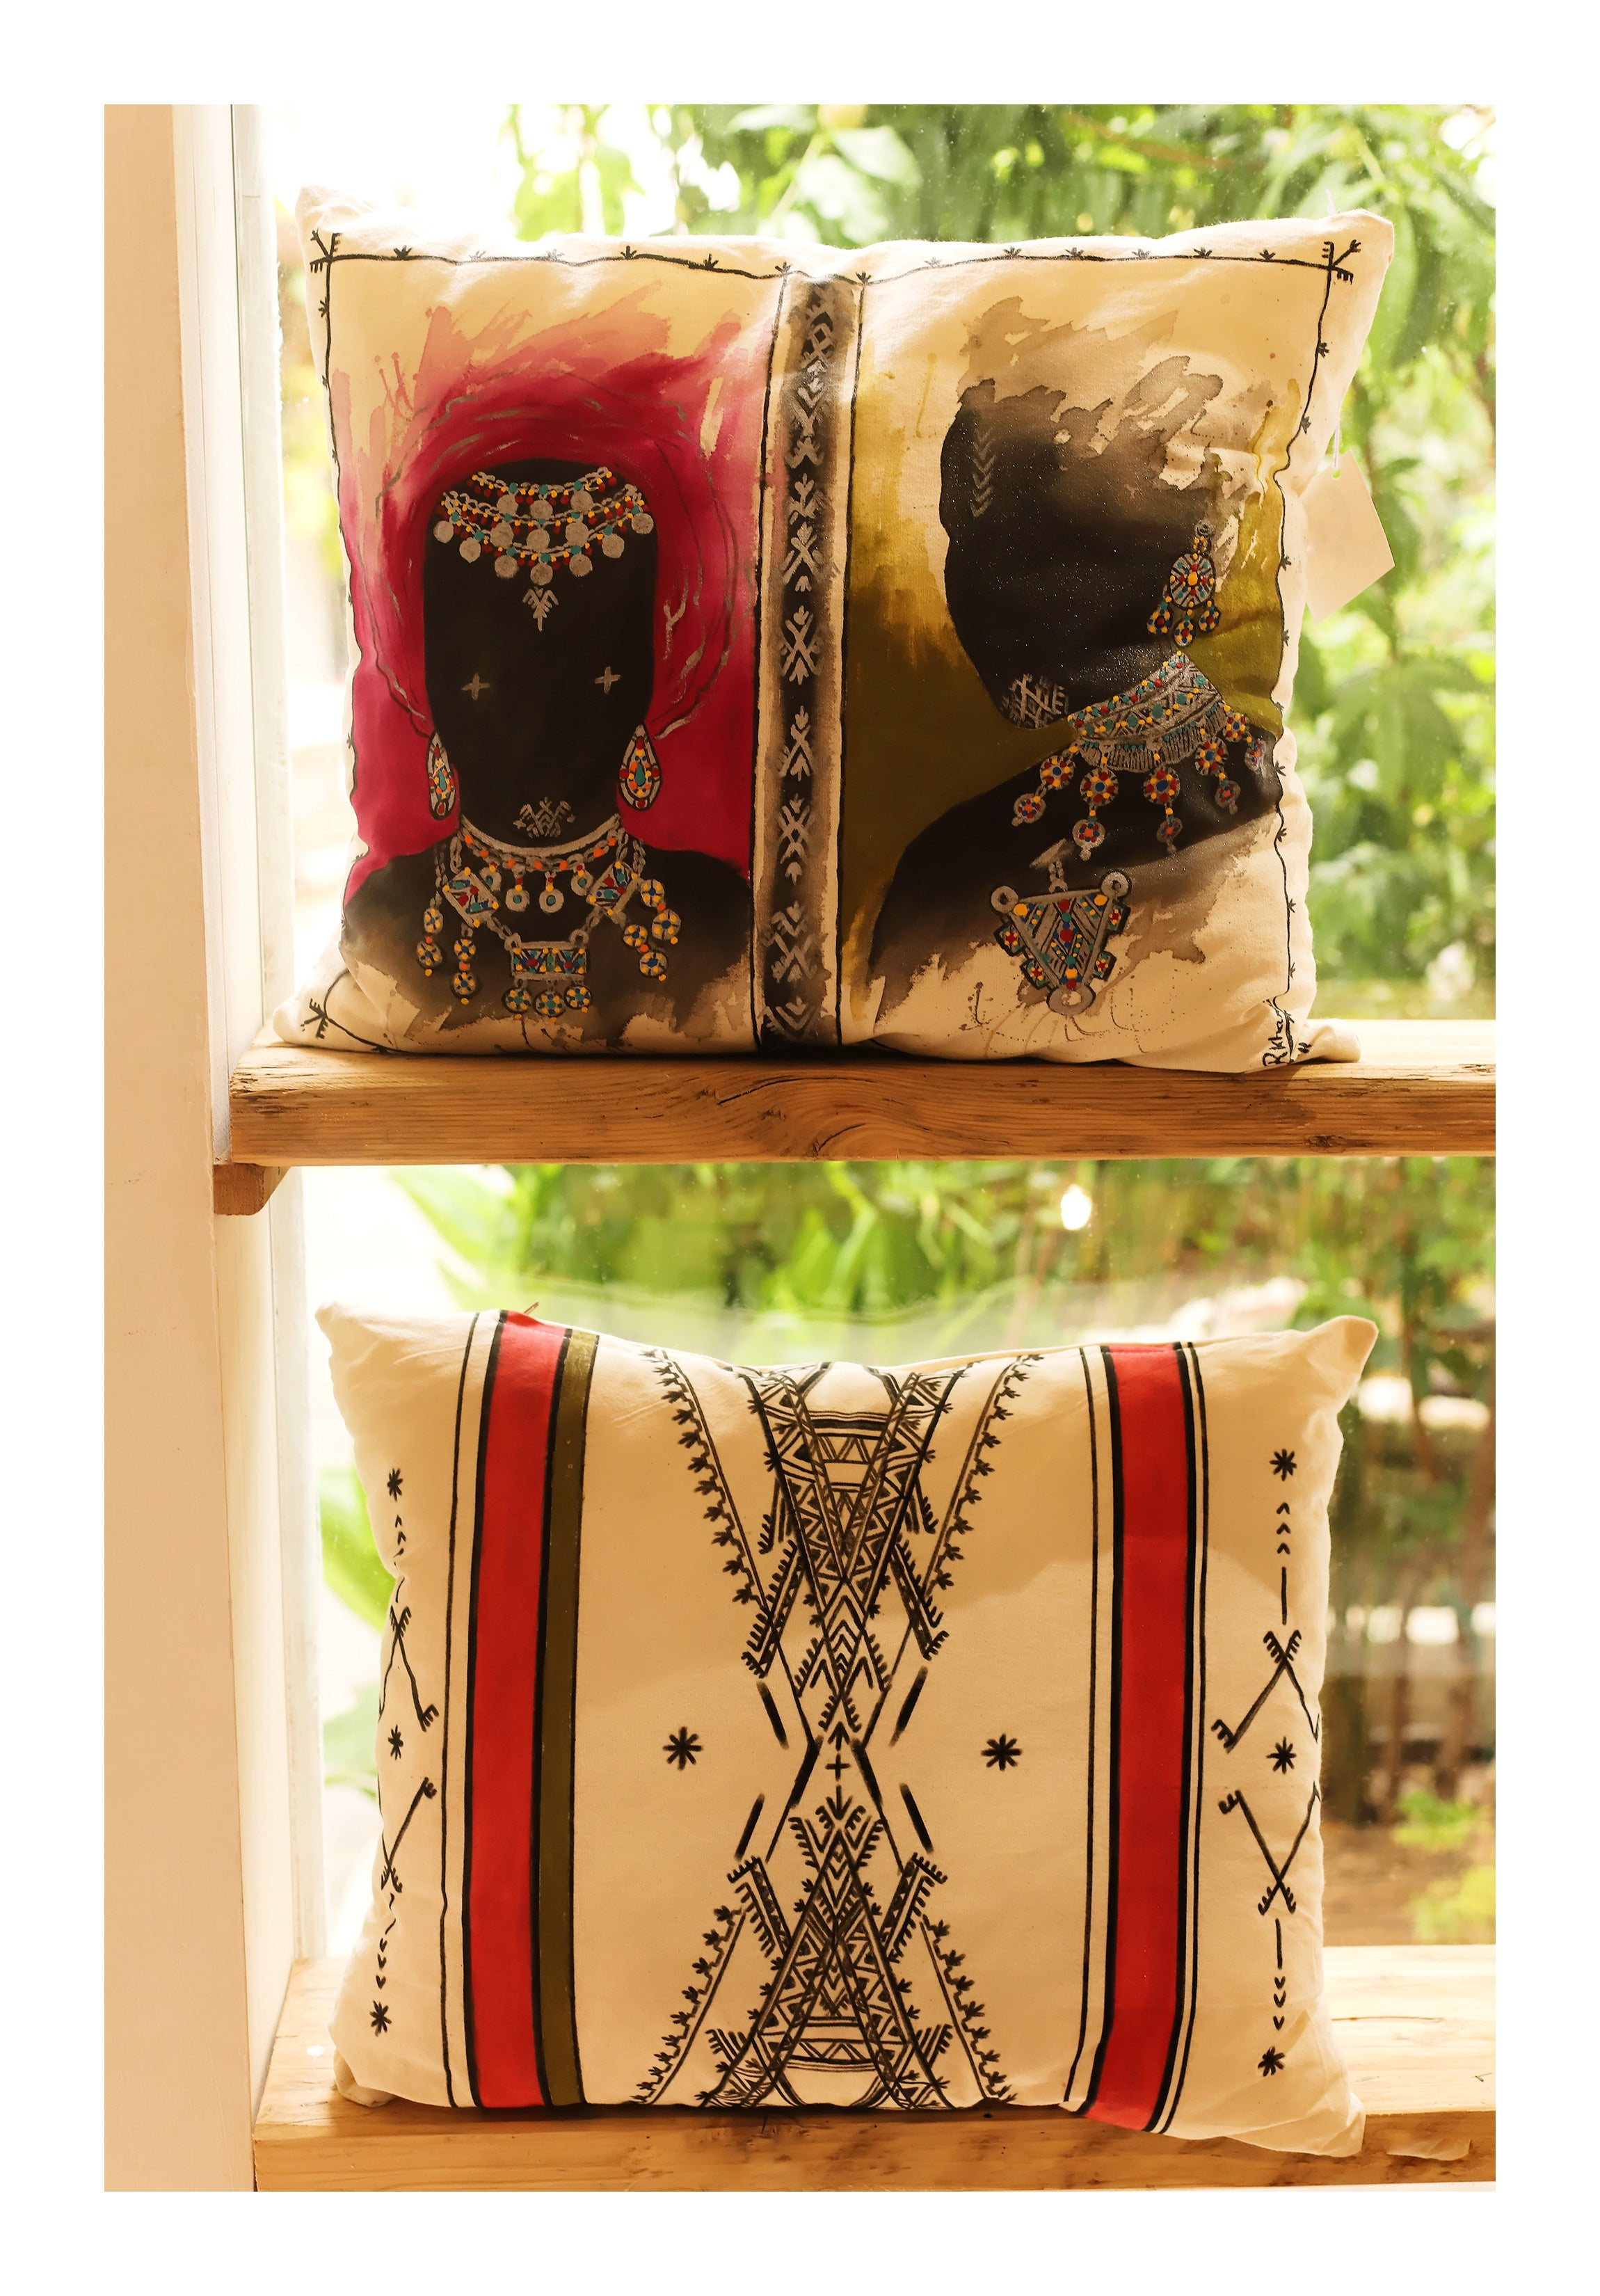 BERBER QUEENS - Handpainted Pillow cover by Fatimazahra Rkhami